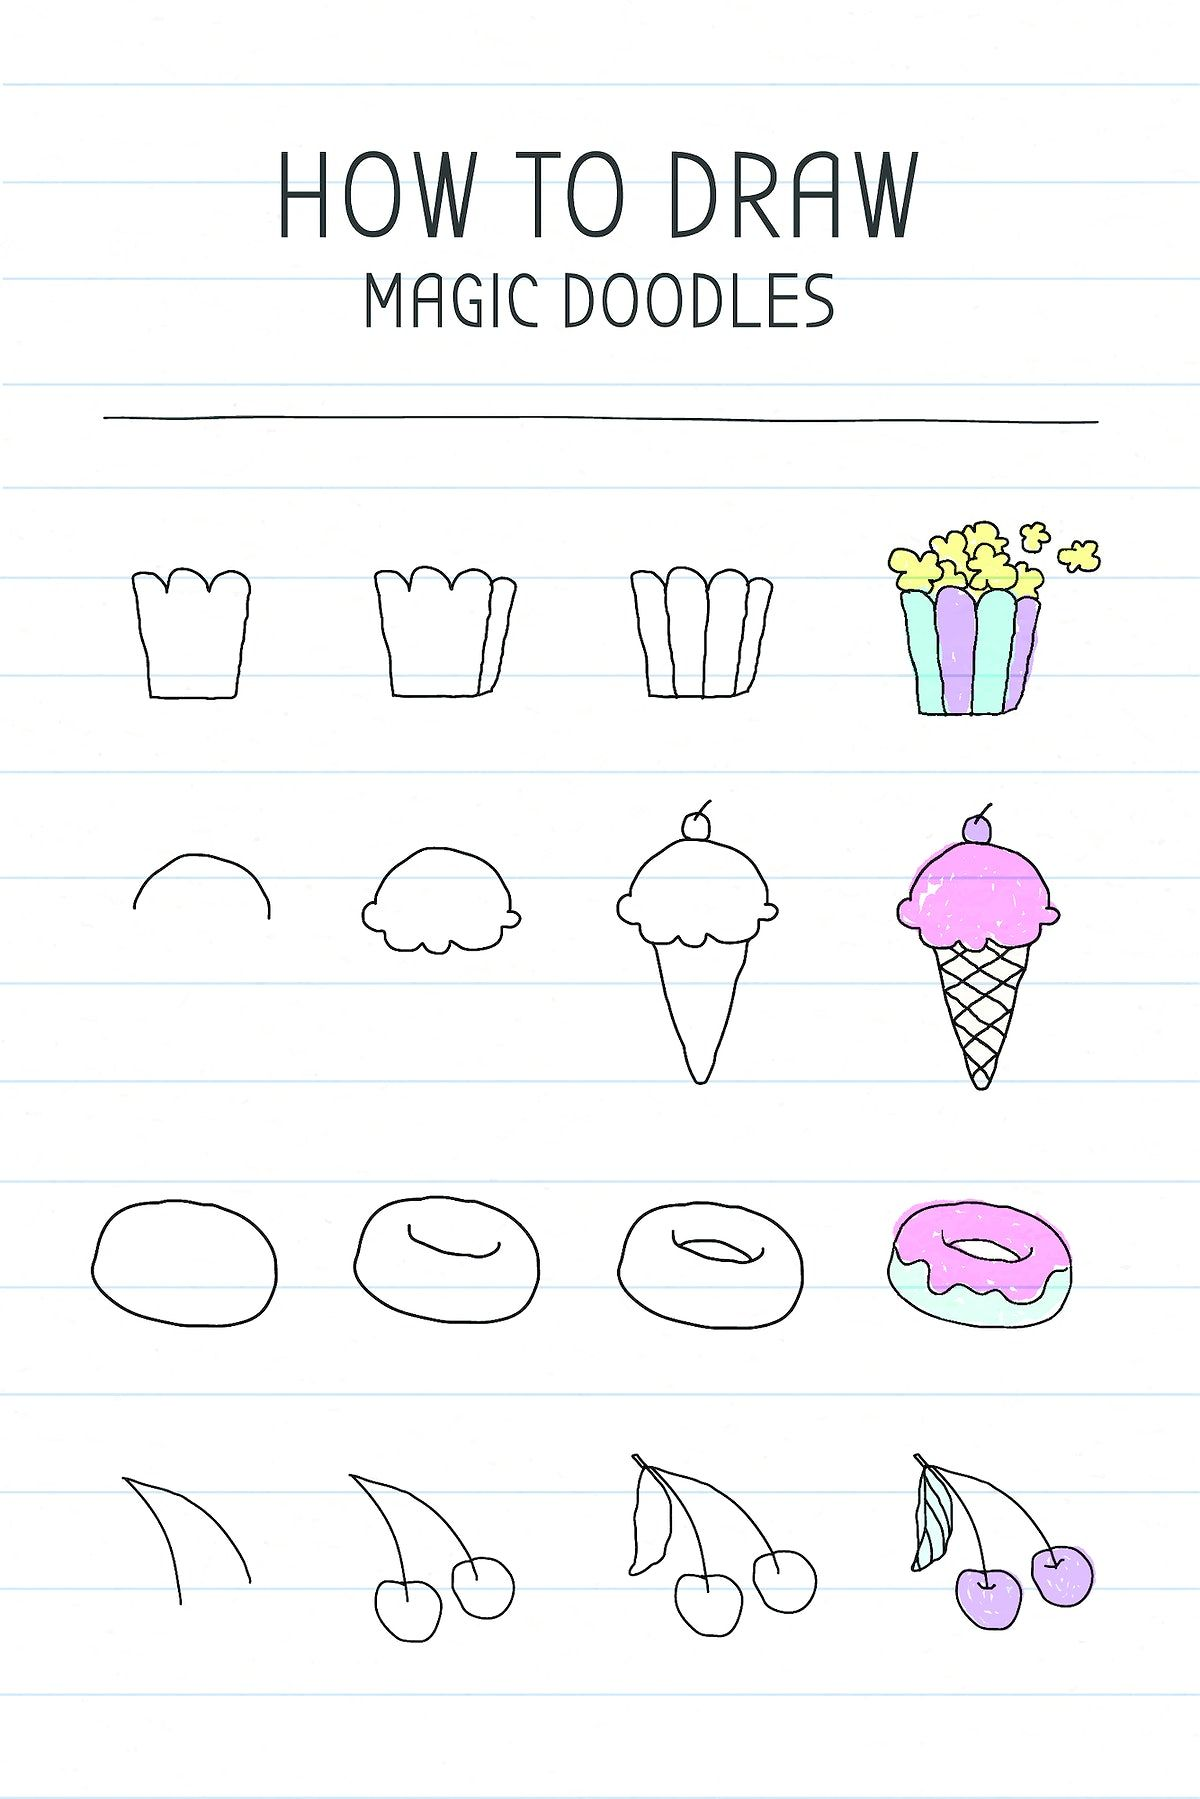 Download free vector of How to draw magic doodles tutorial  vector 2430376